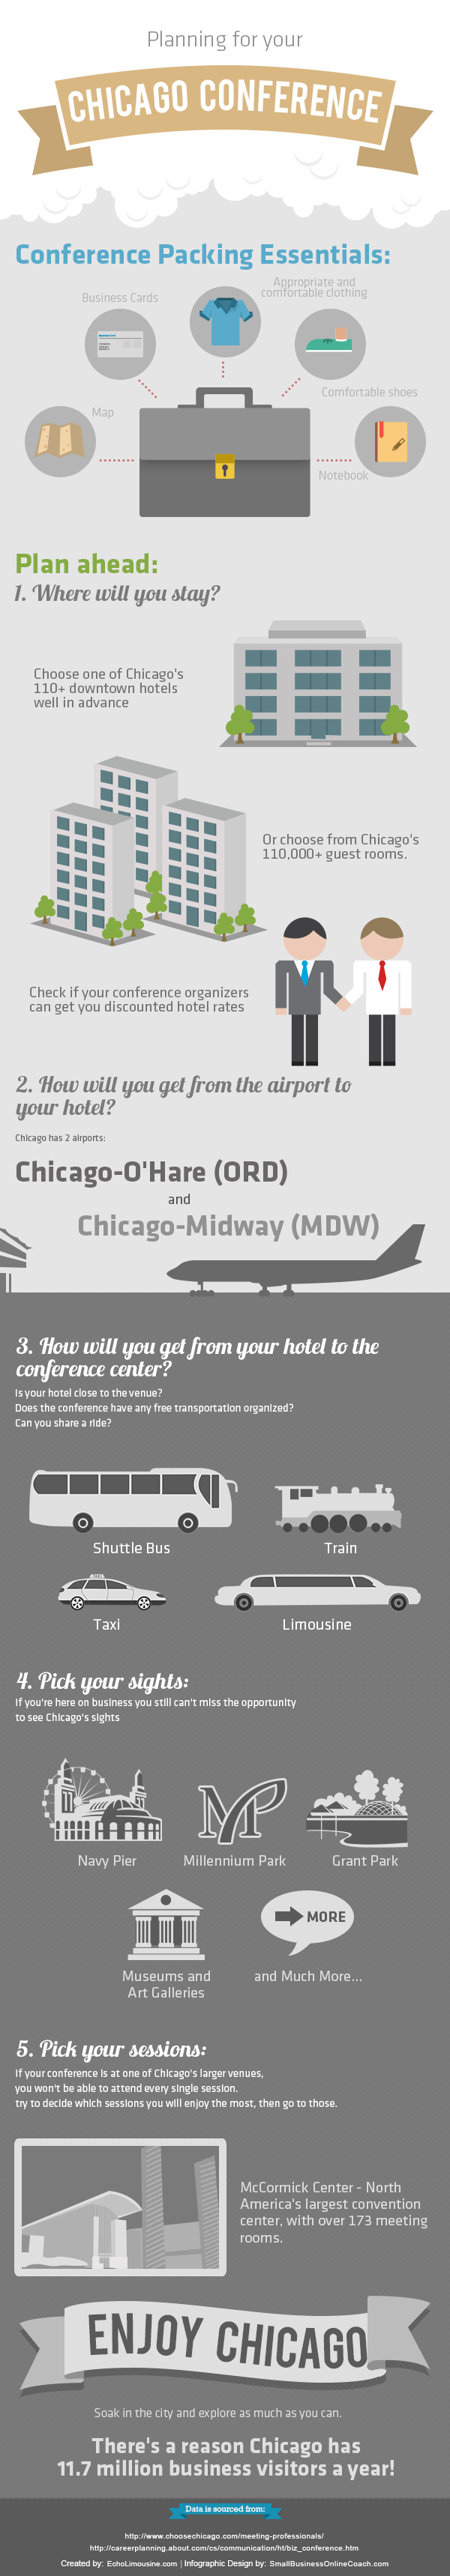 Echo Limousine's Chicago Conference Planning Infographic